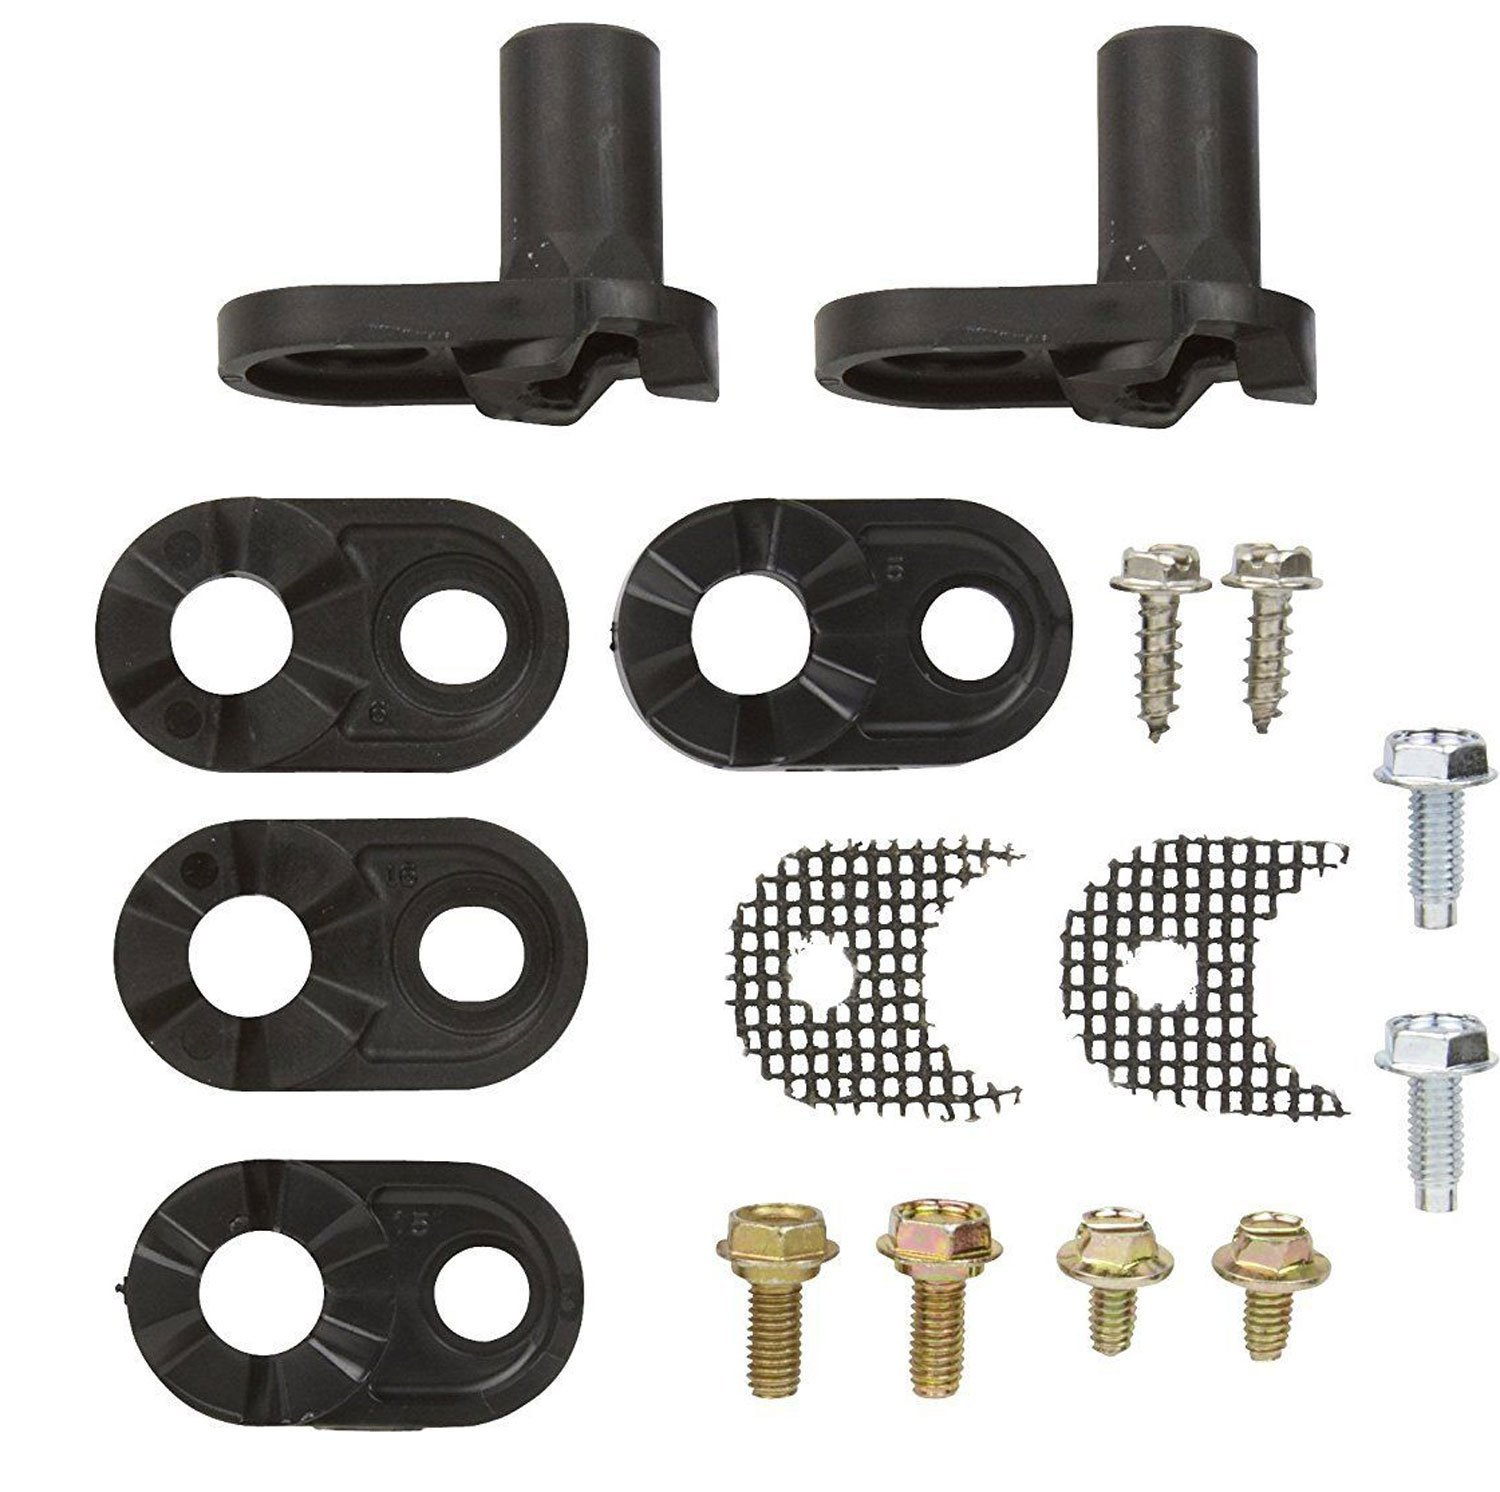 Refrigerator Door Closer Kit that works with Kenmore/Sears 10647022790